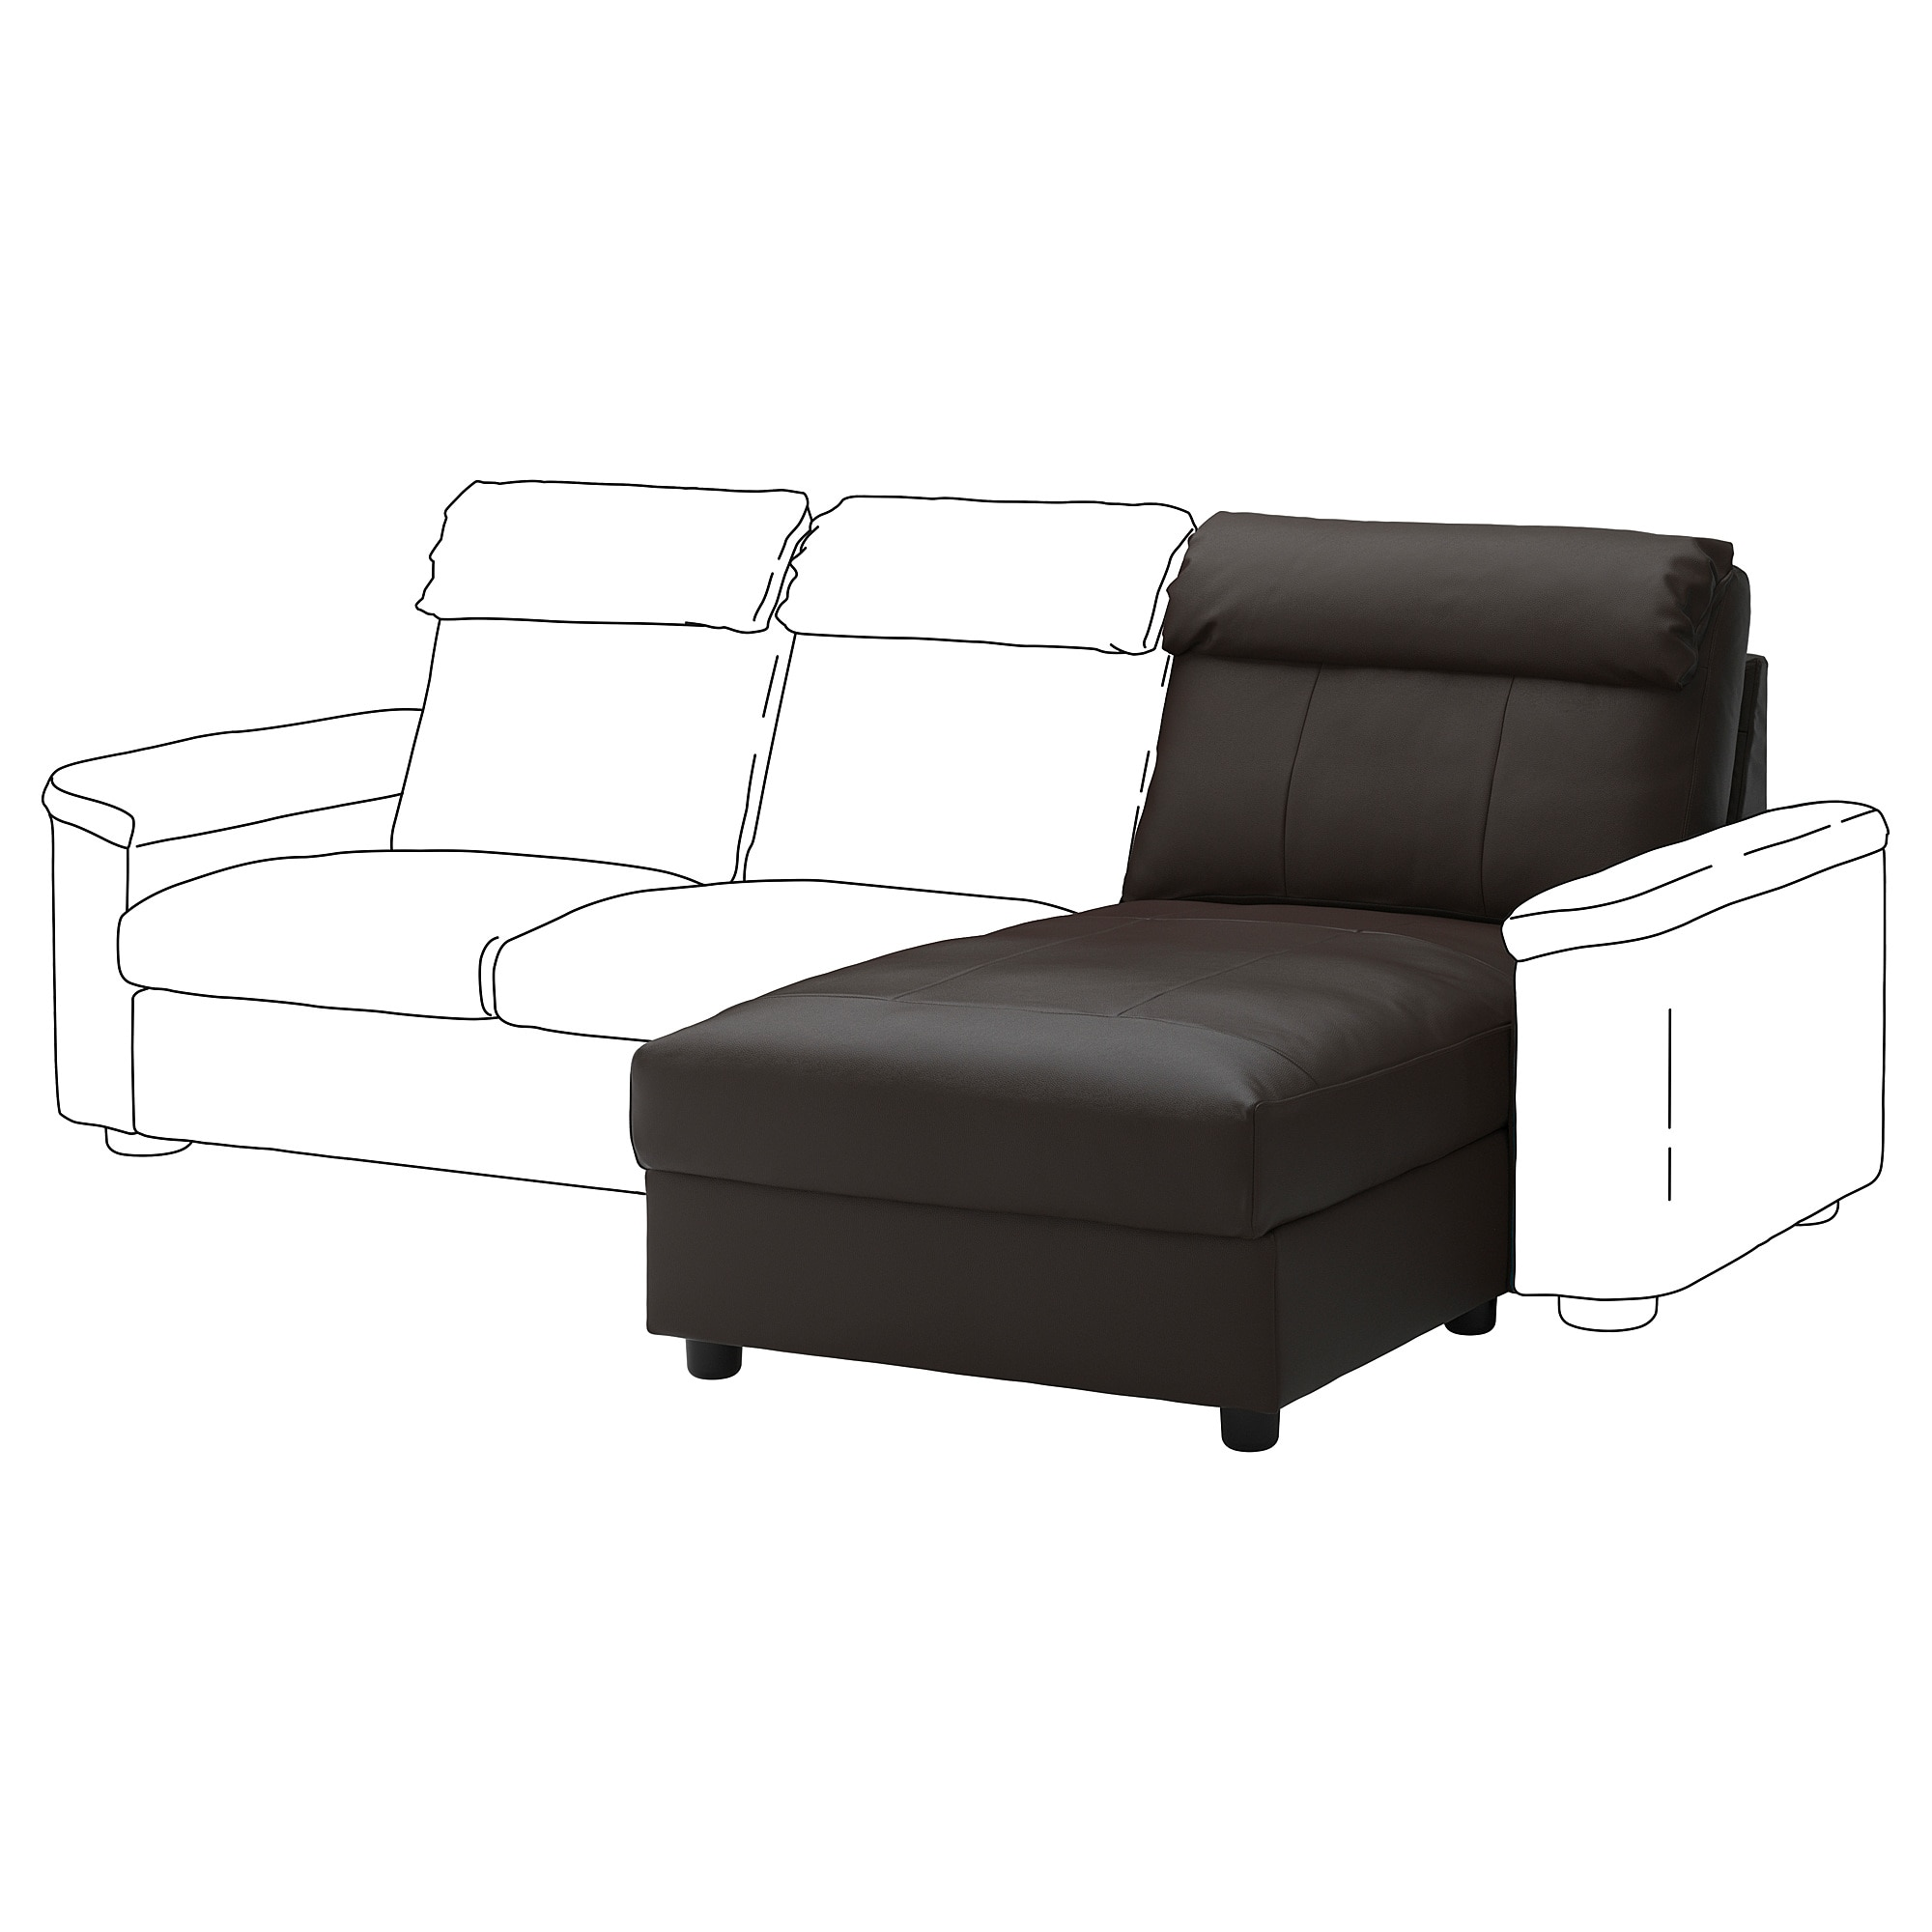 LIDHULT Chaise section, Grann/Bomstad dark brown | Products ...